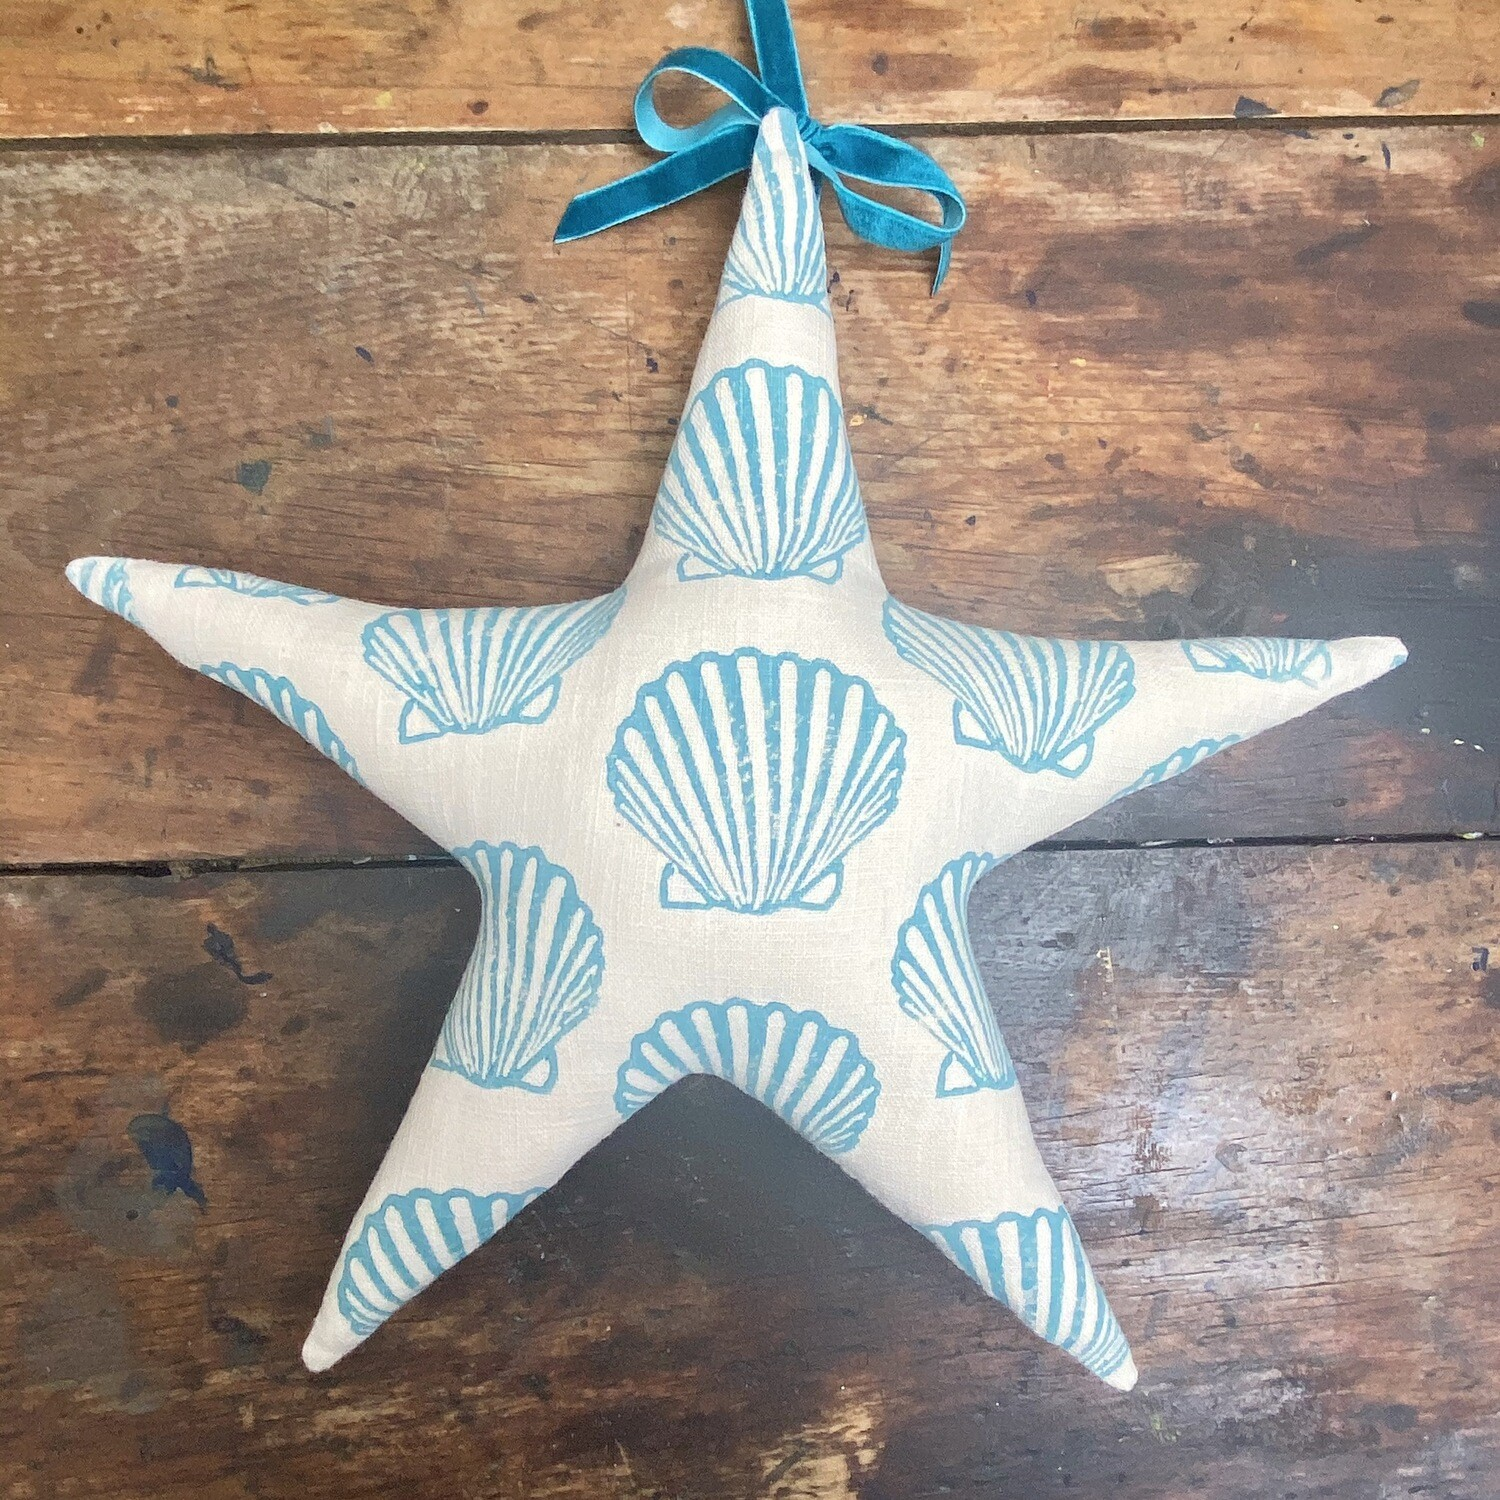 Fabric Star Decoration - Scallop Shell